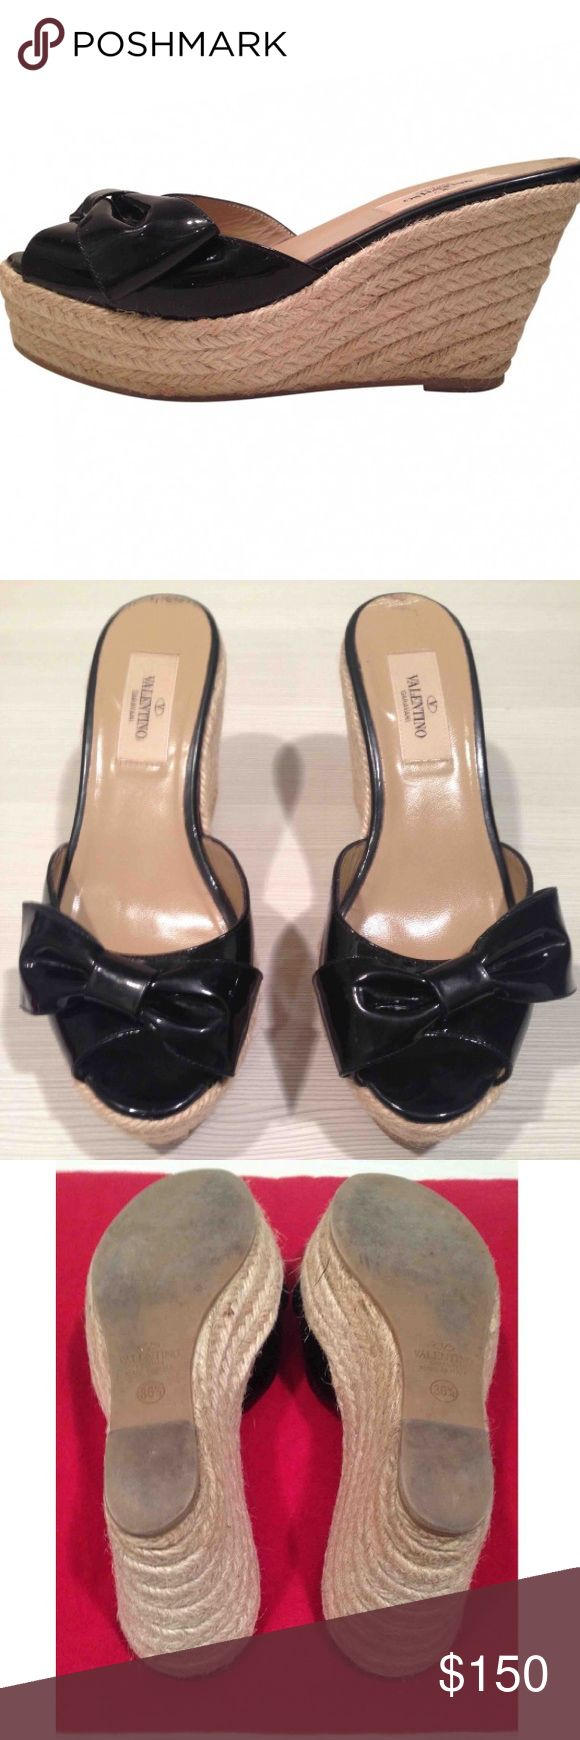 Black Patent Valentino Wedge Sandals Valentino blk patent wedge platform sandal with bow detail; natural raffia braided platform; very comfortable; good condition; includes box and dust bag Valentino Shoes Wedges